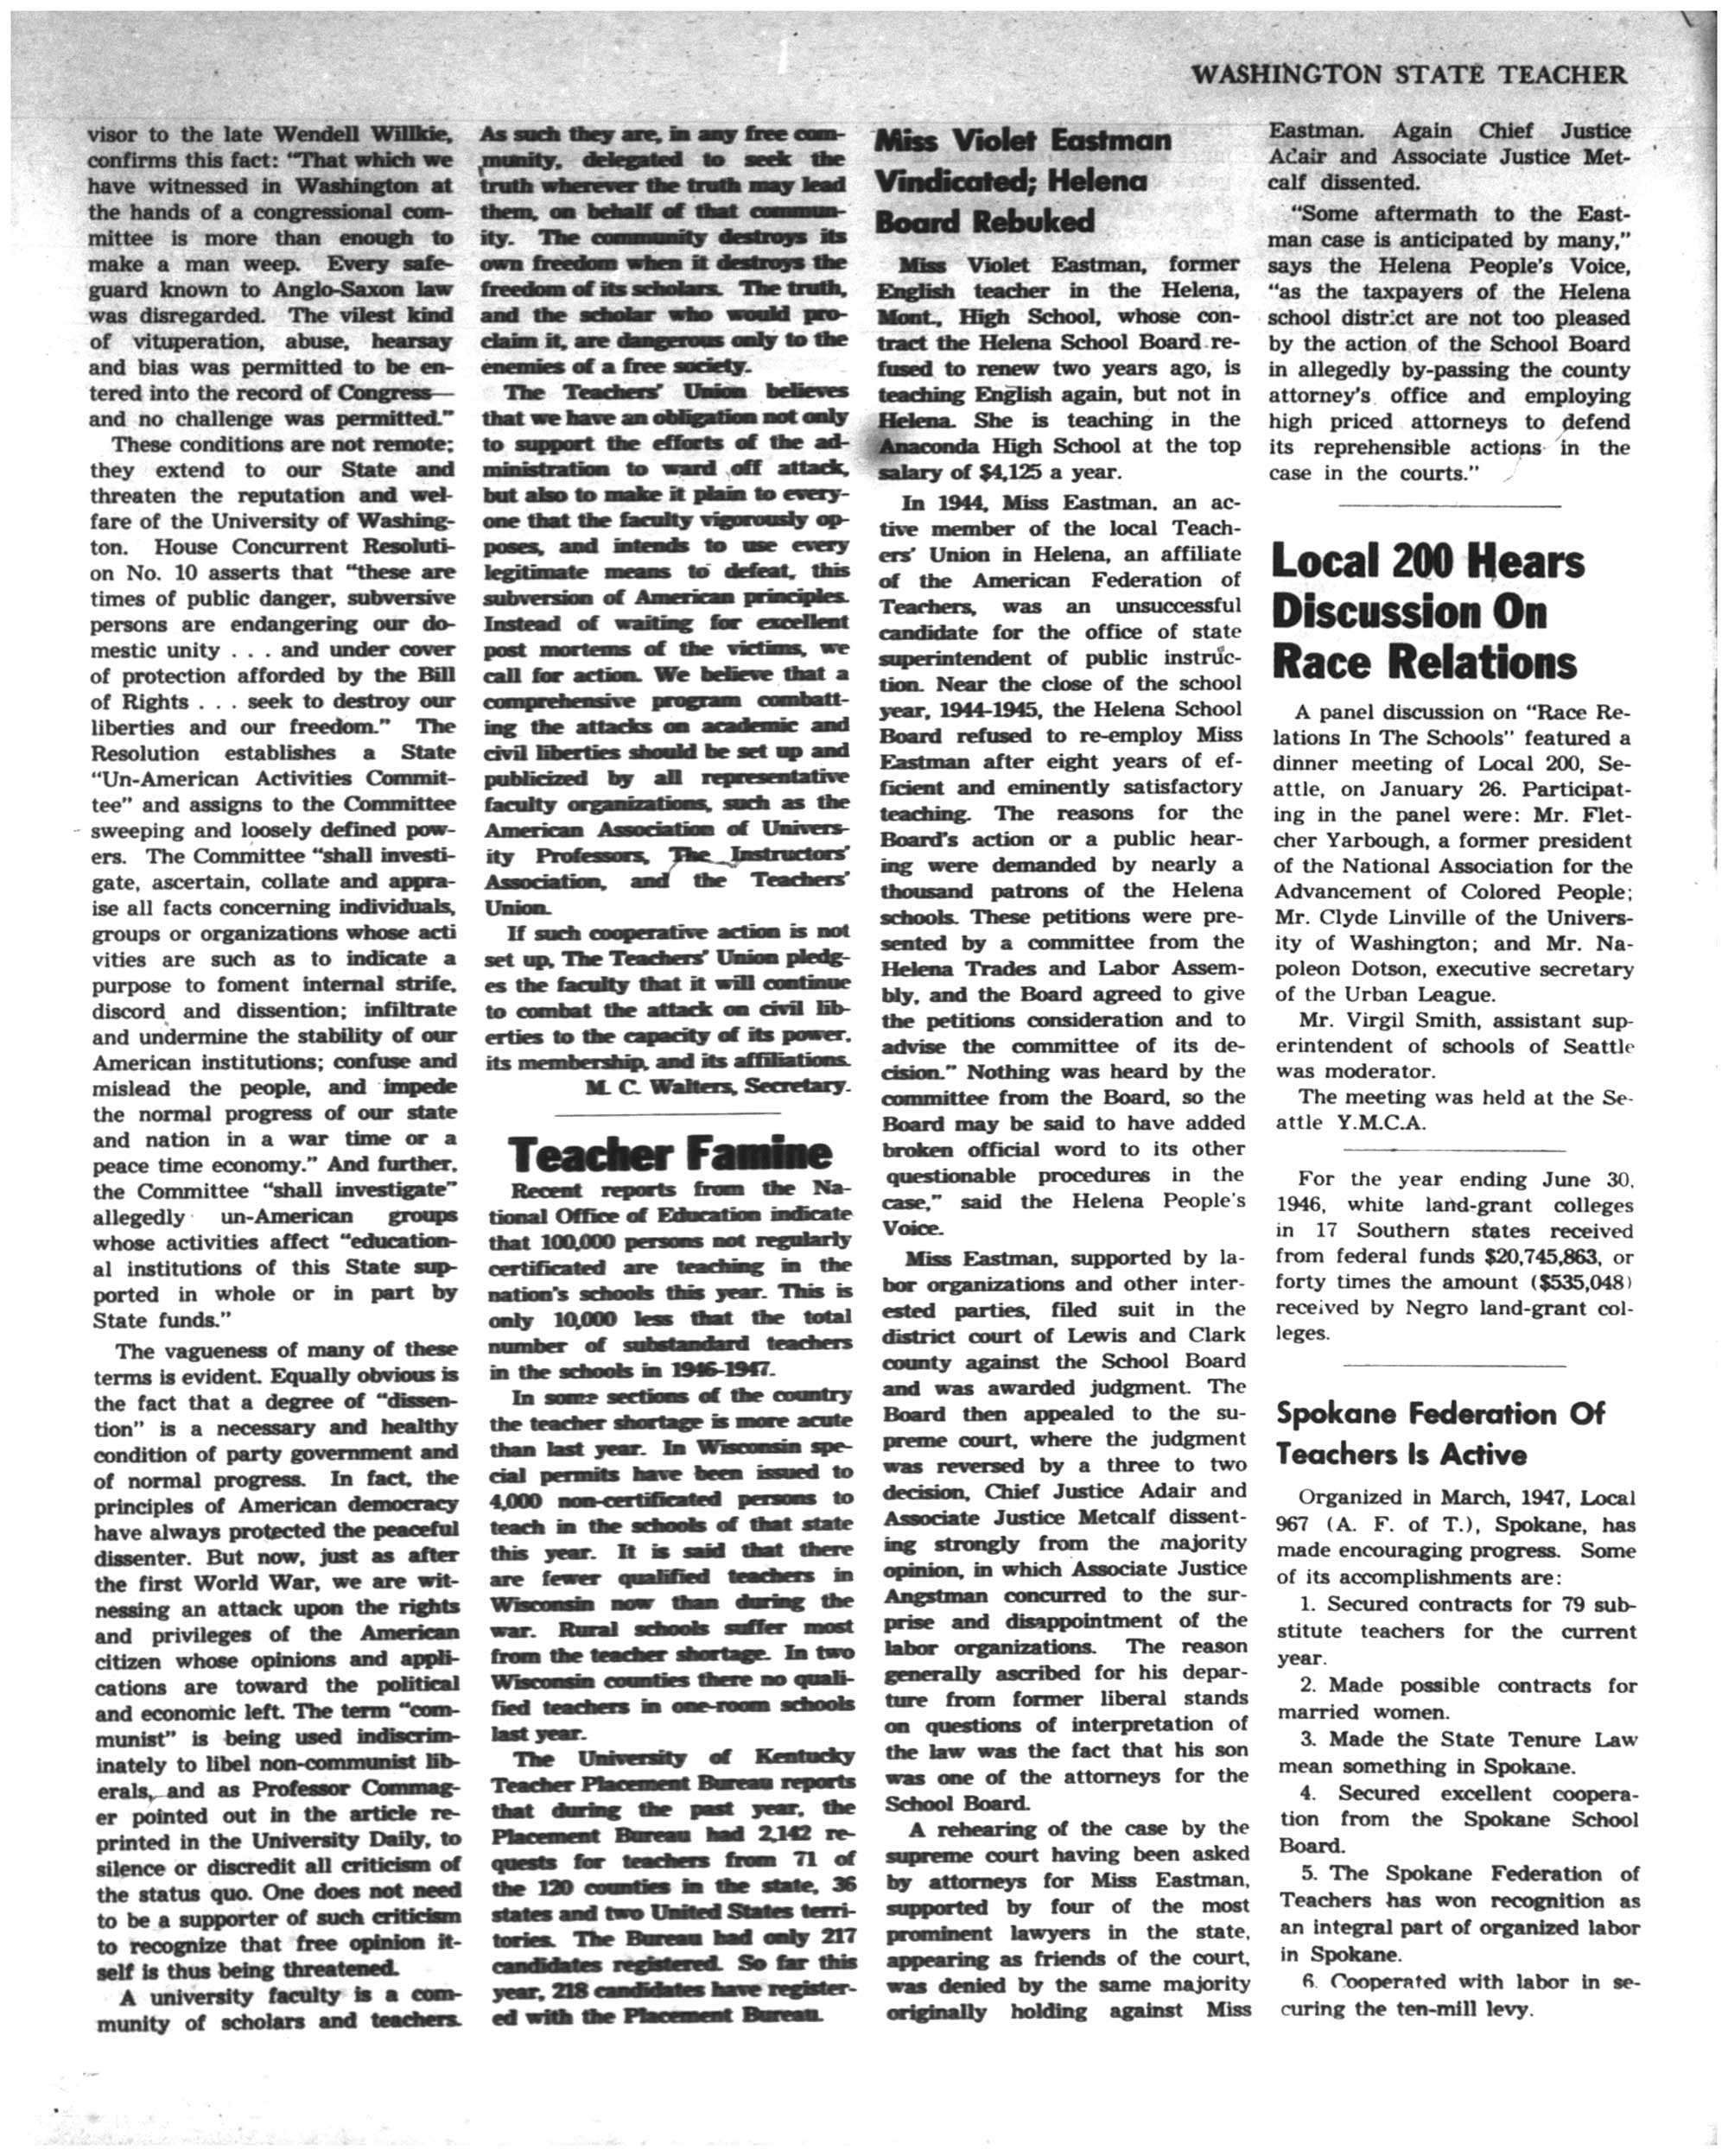 015 Concept Essay Mar1948p320uw20local20401 Race Large Fearsome On Racism Paper Examples Beauty Full